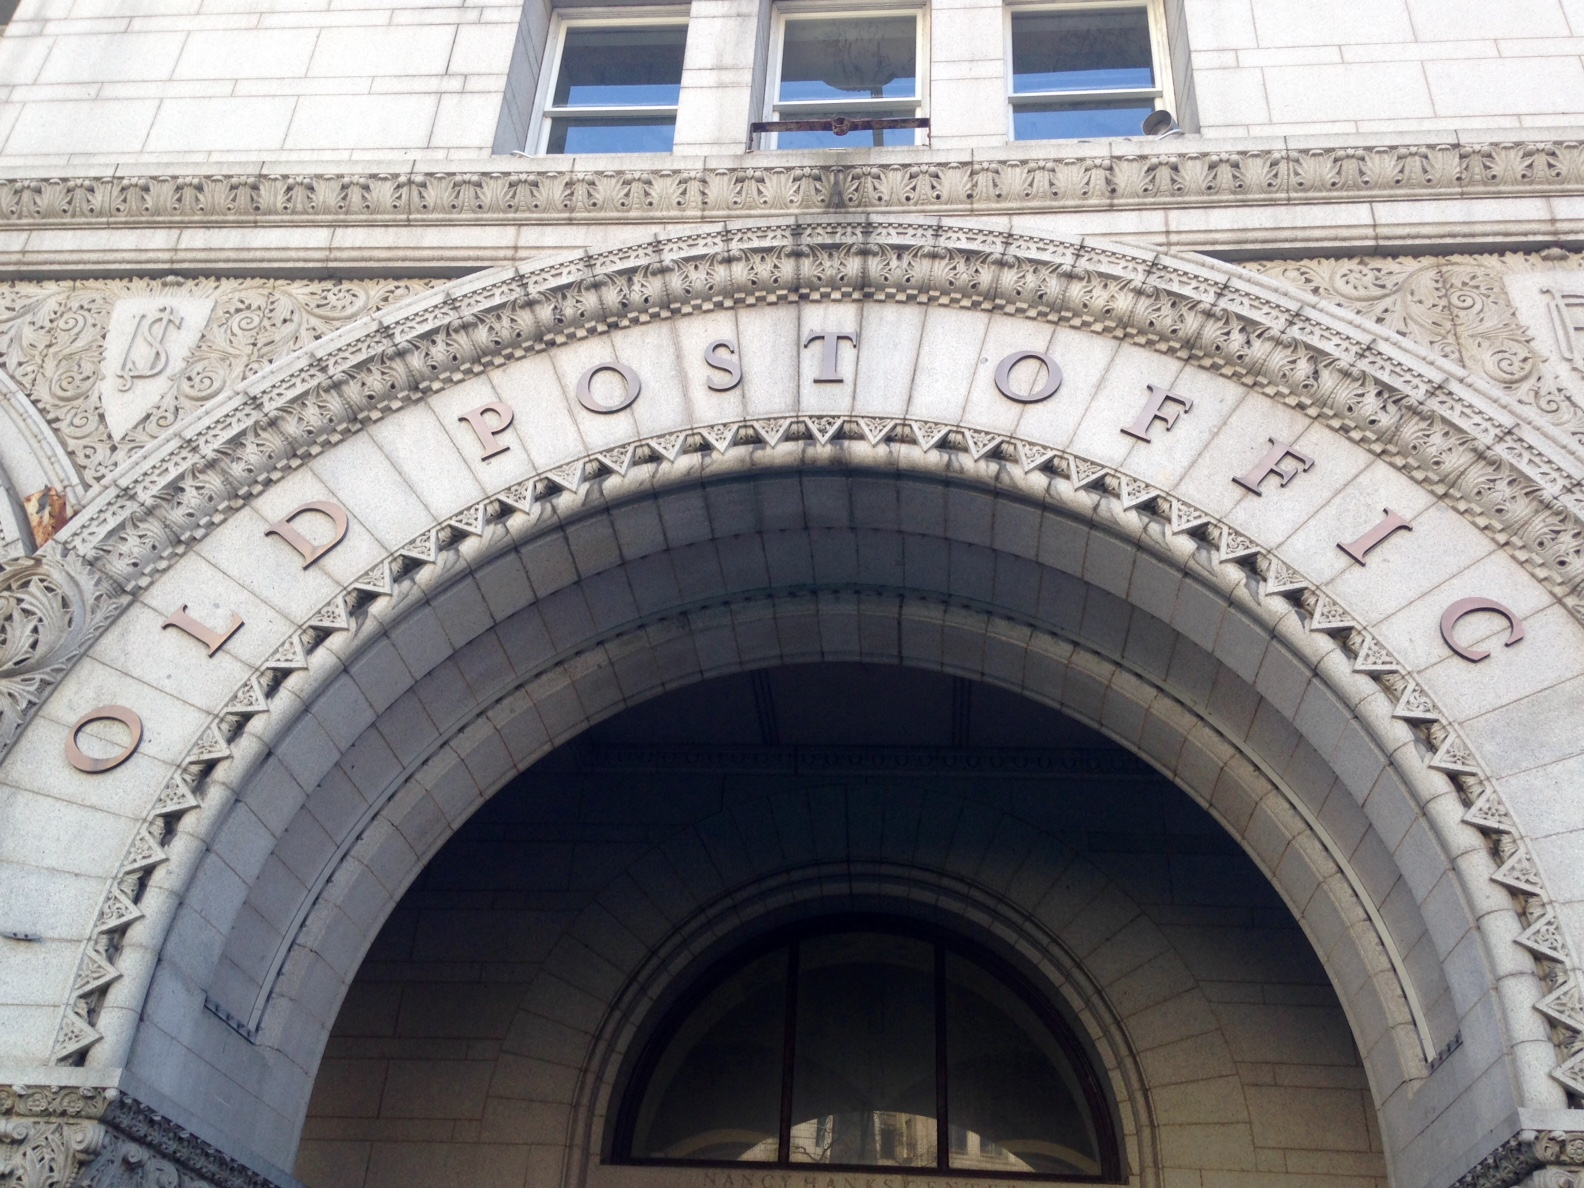 Donald Trump's company won the lease of the General Services Administration building, many refer to as the Old Post Office on Pennsylvania Avenue. (WTOP/Megan Cloherty)